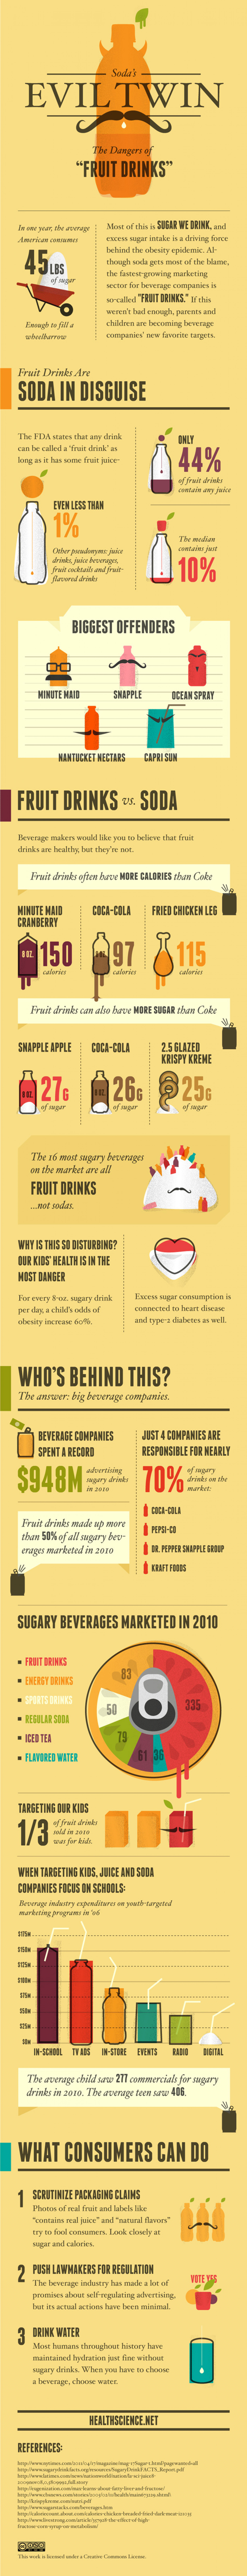 Soda's Evil Twin – The Dangers of Fruit Drinks Infographic